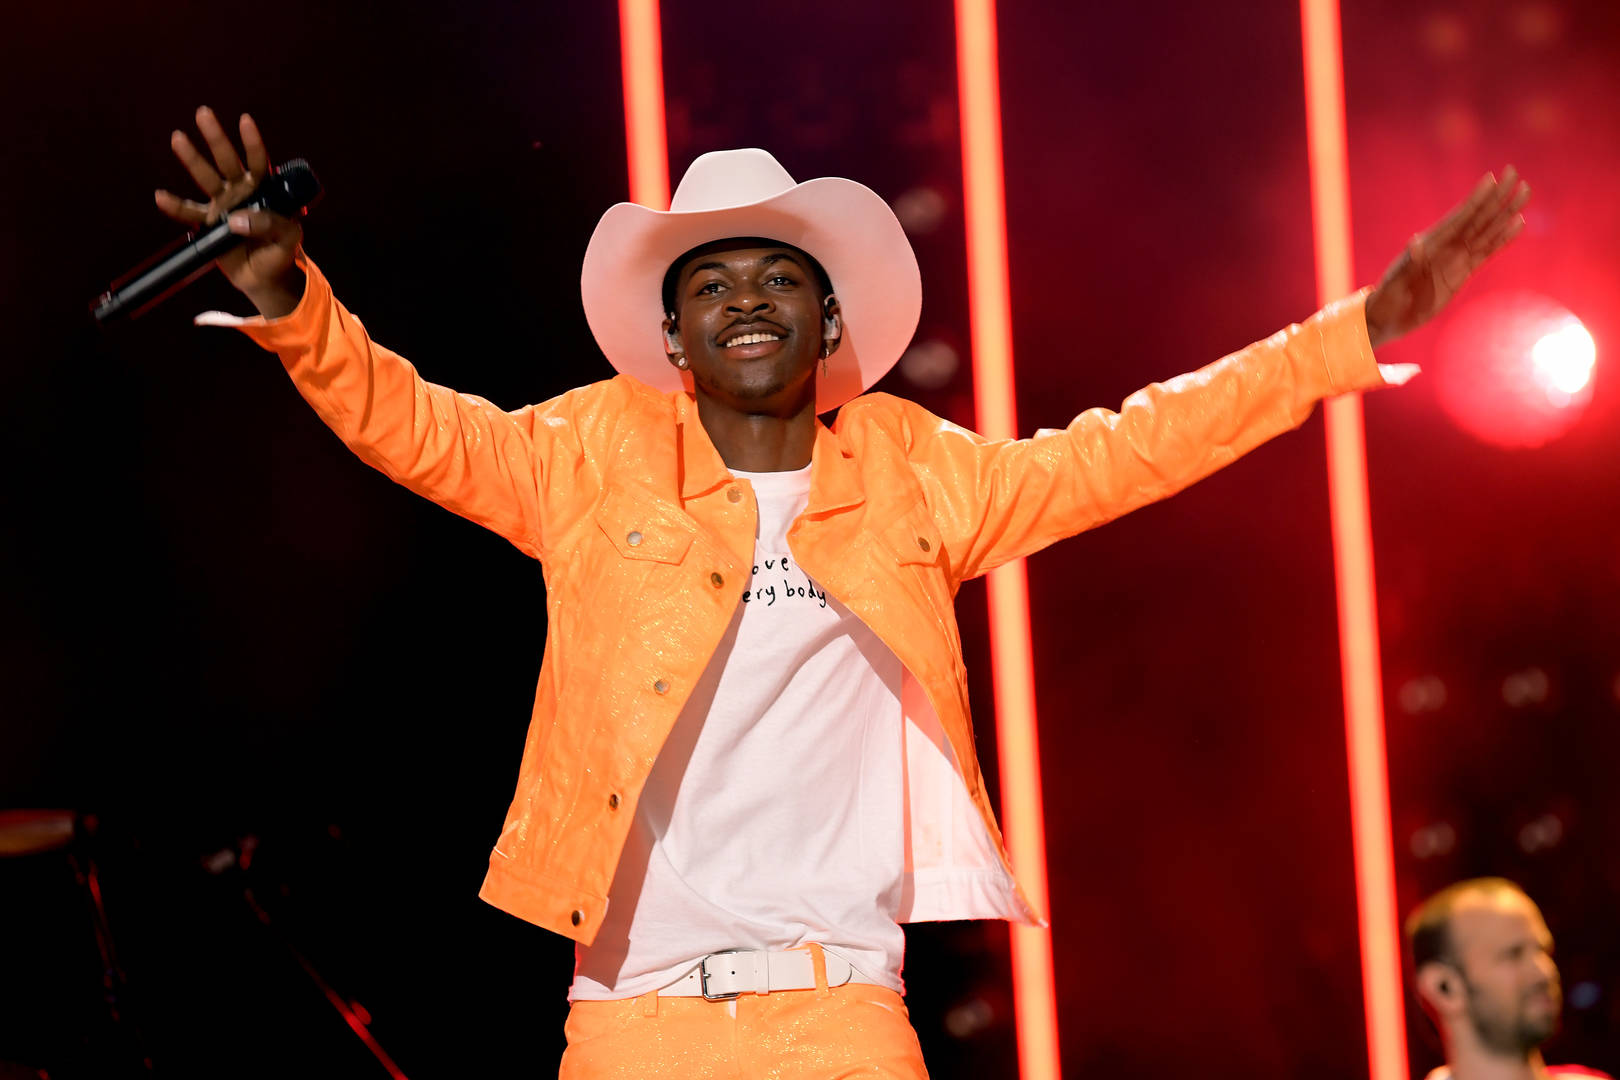 Preview Lil Wayne's 'Old Town Road' Remix